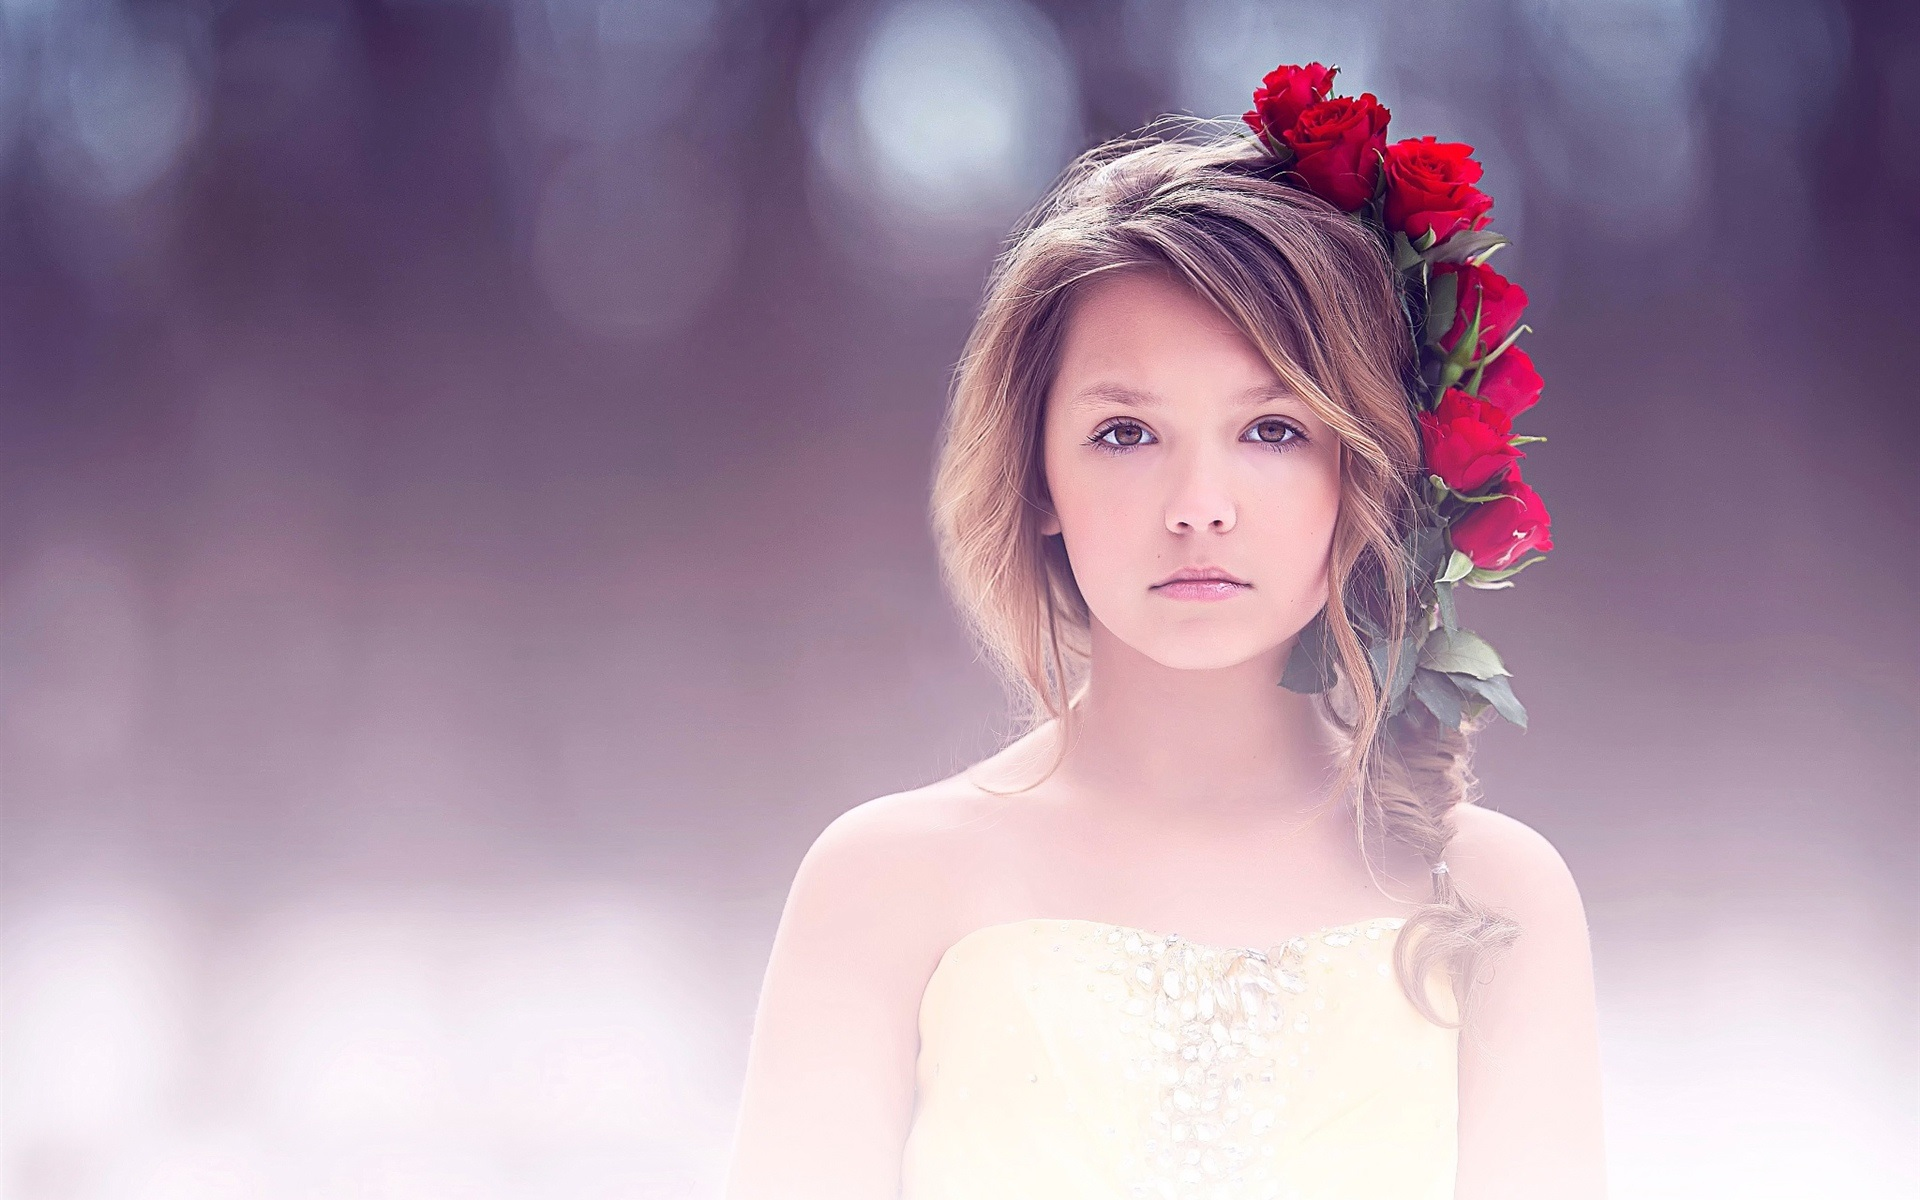 wallpaper fine art, cute girl, portrait, red rose 1920x1200 hd